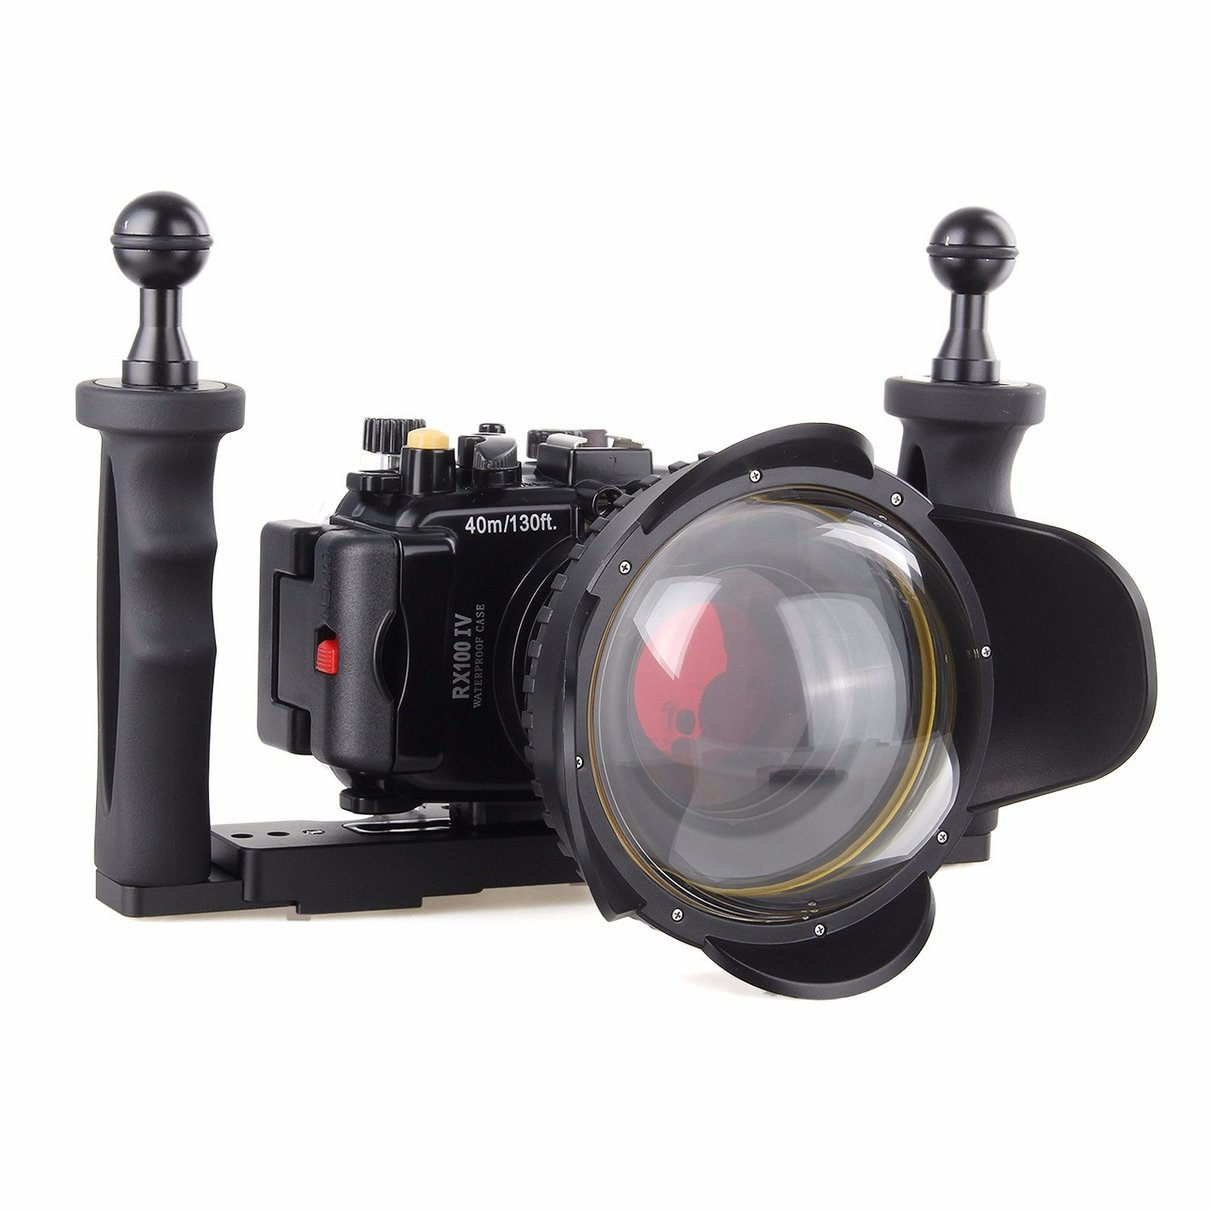 40M Underwater Waterproof Camera Housing Diving Case for Sony RX100 IV M4 + Red Filter + Fisheye Lens + Two Hands Aluminium Tray 40m 130ft waterproof underwater camera diving housing case aluminum handle for sony a7 a7r a7s 28 70mm lens camera